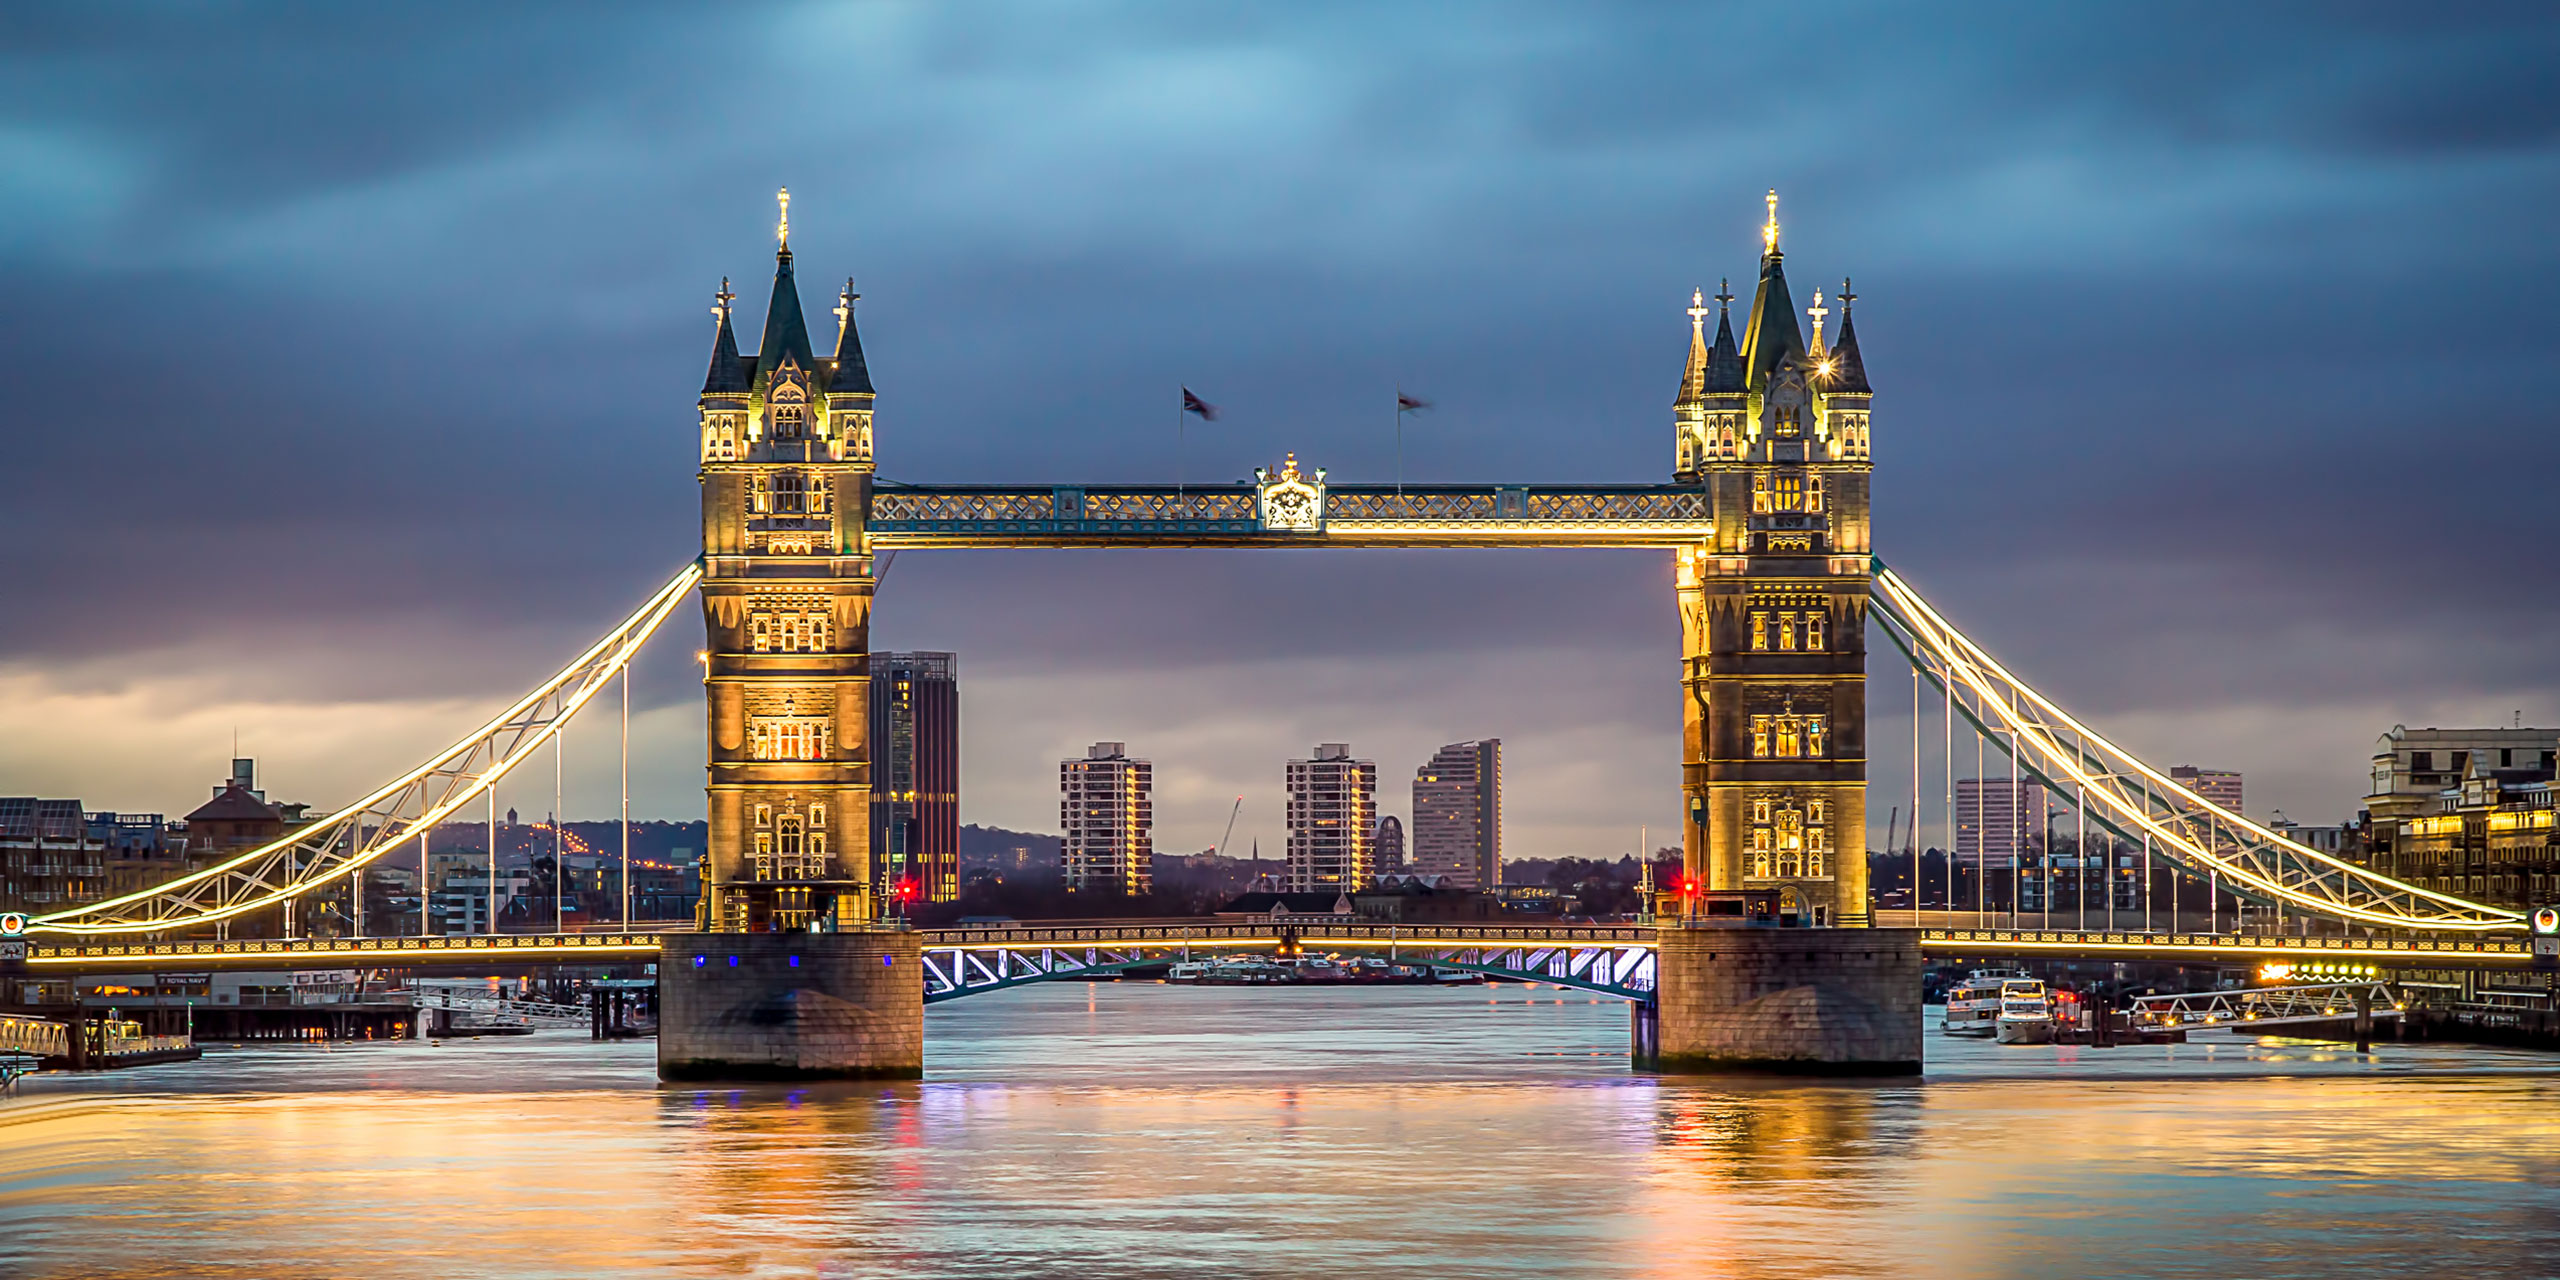 London Tower Bridge; Courtesy of olavs/Shutterstock.com